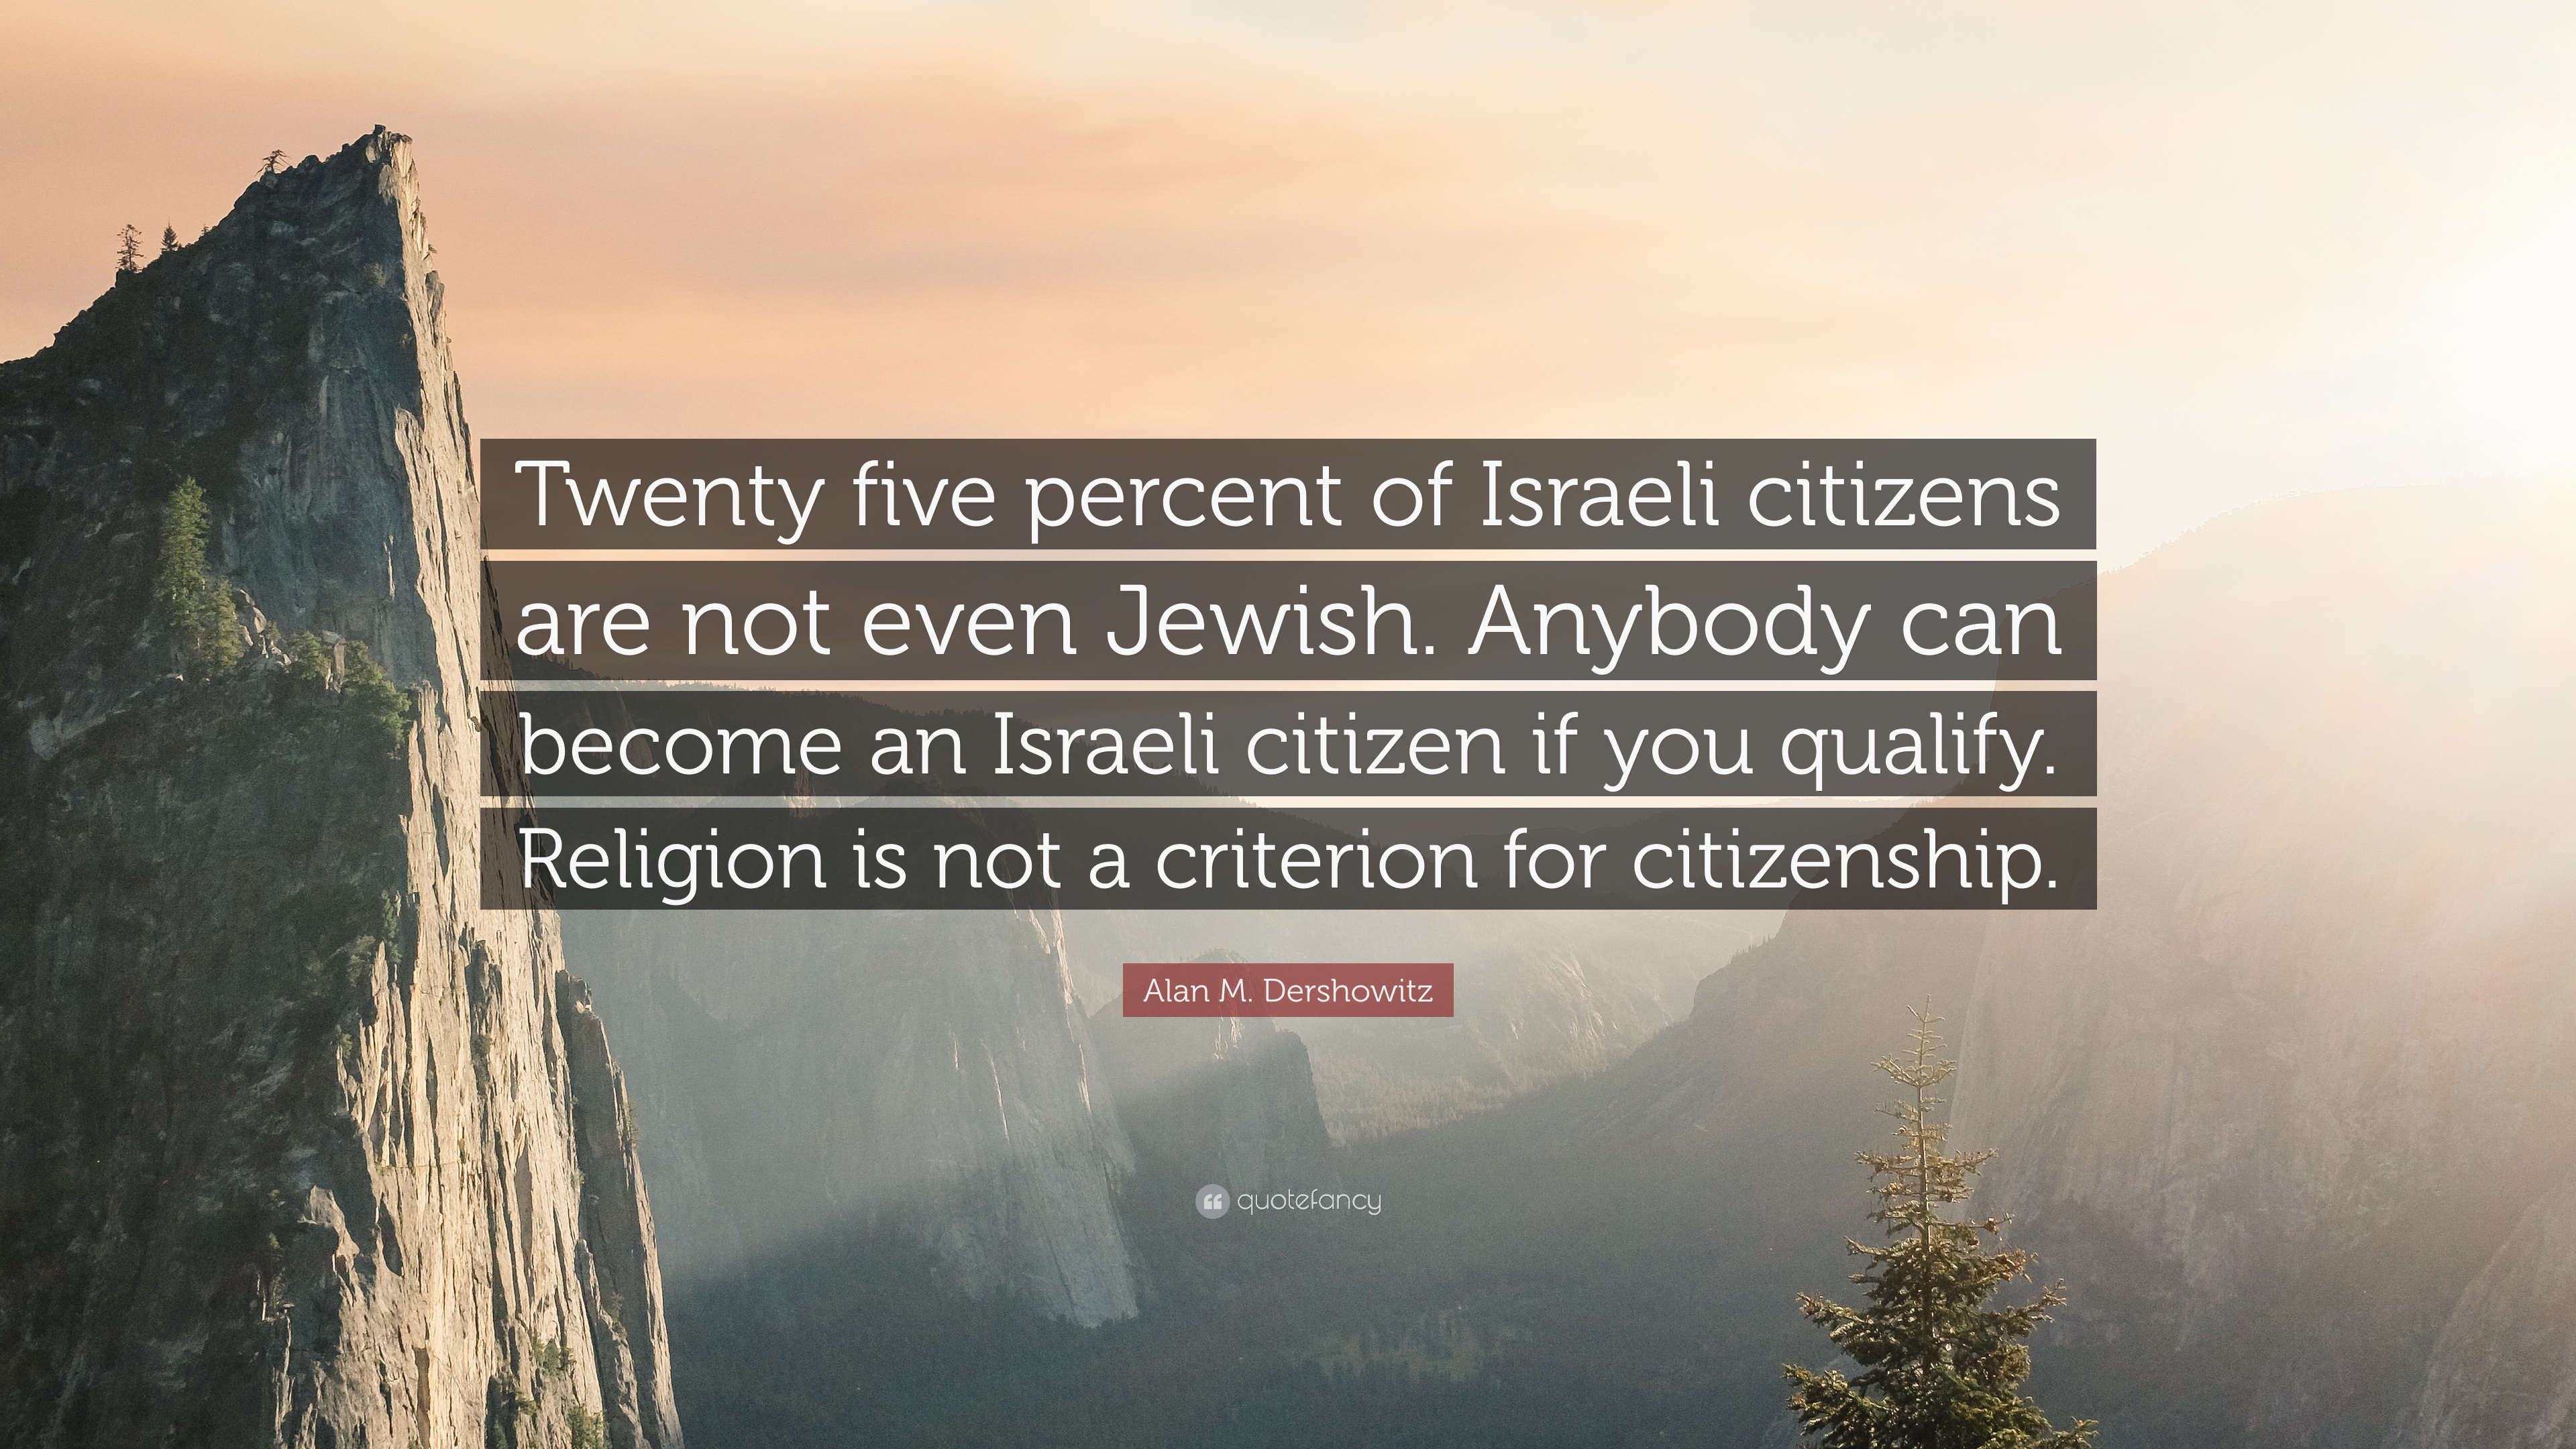 Forum on this topic: How to Become an Israeli Citizen, how-to-become-an-israeli-citizen/